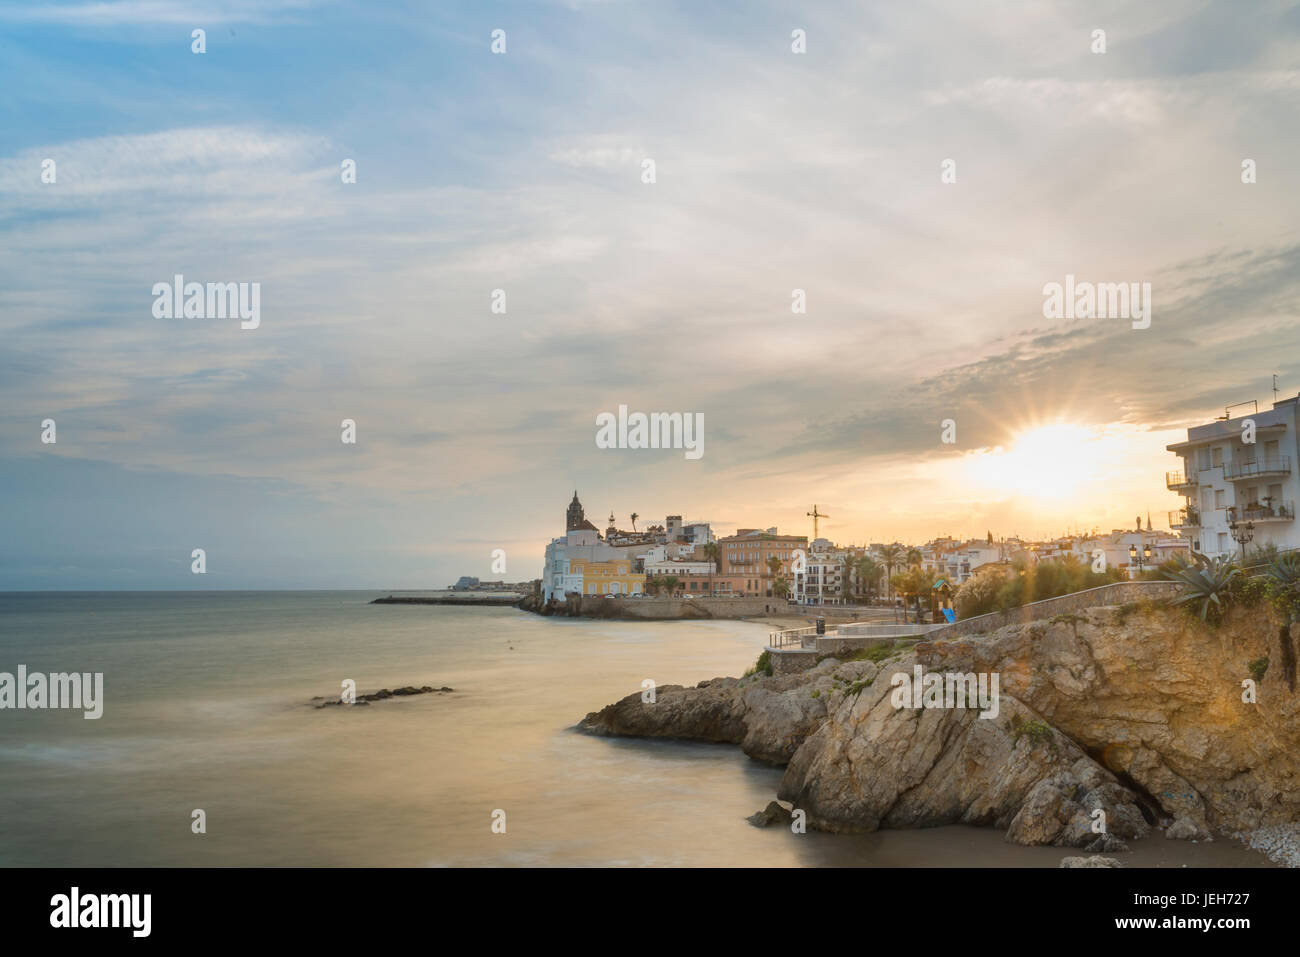 Sitges downtown and seaside view; Sitges, Barcelona province, Spain - Stock Image